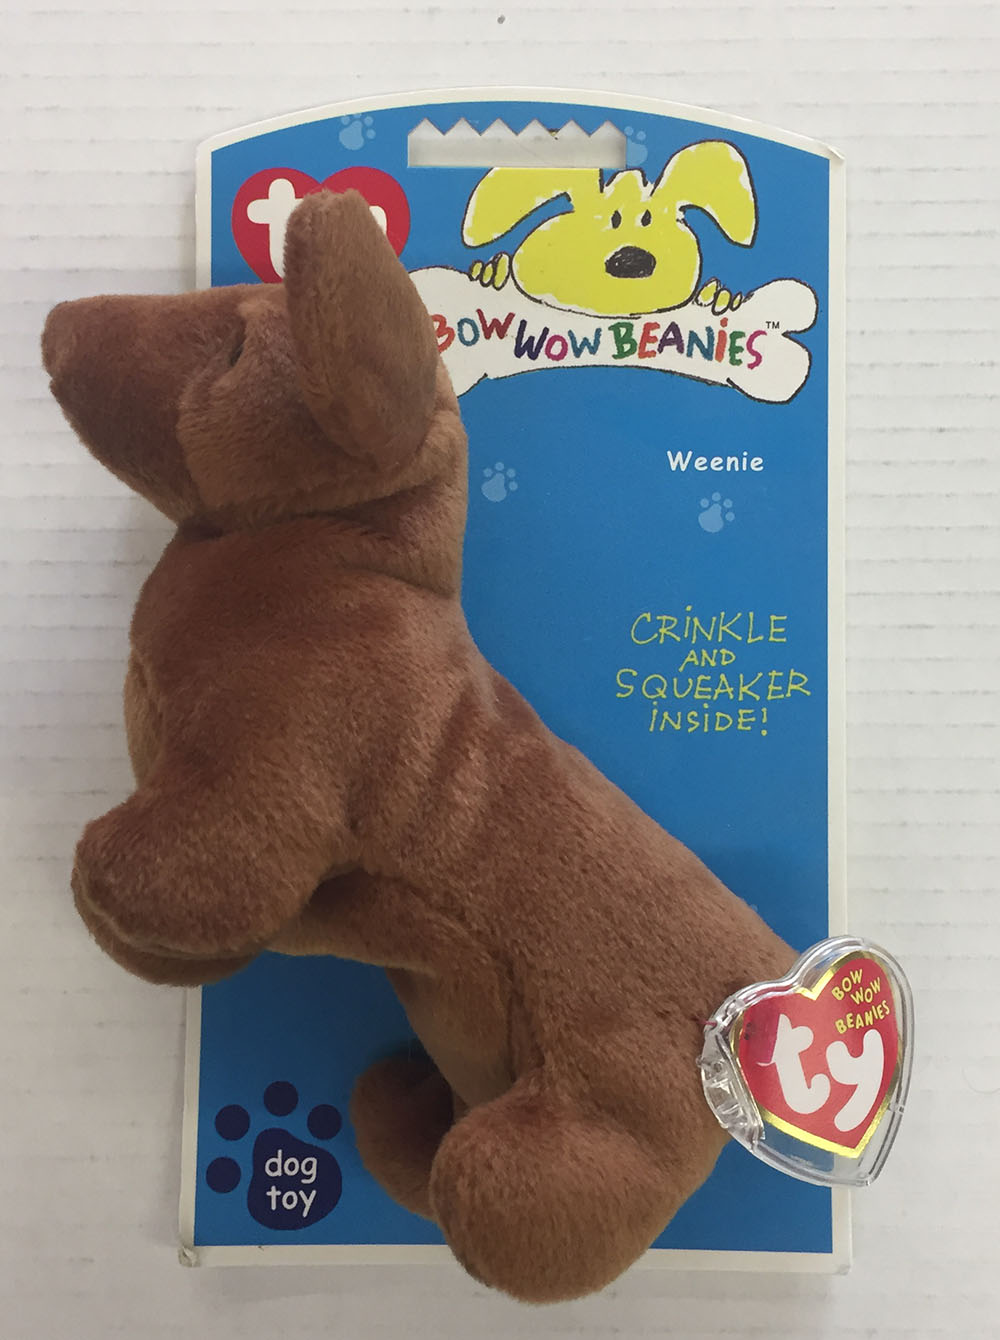 4df9e174d47 Details about WEENIE THE DACHSHUND DOG TOY TY BOW WOW BEANIES 2006